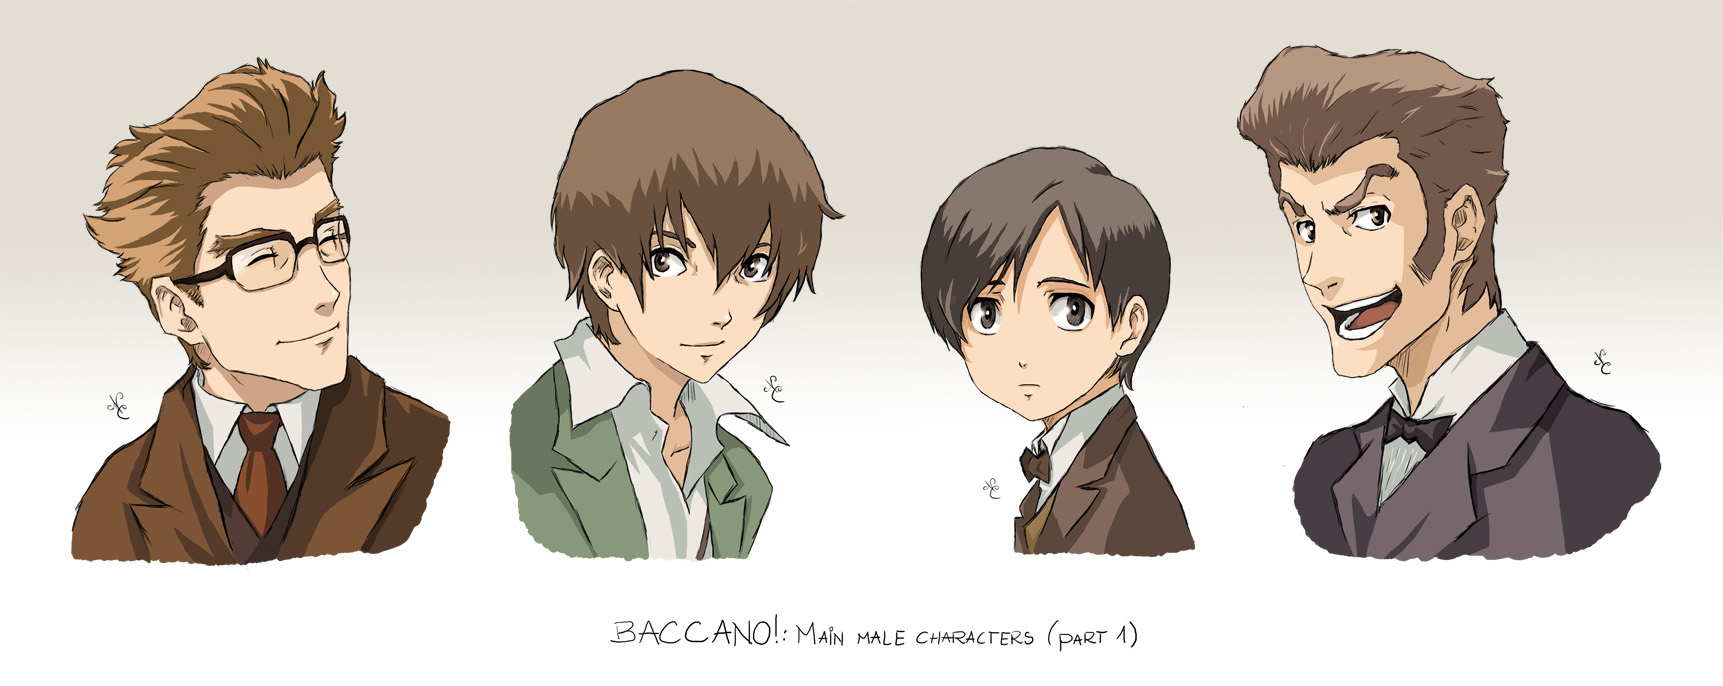 BACCANO characters part 5 by NicoleCover on DeviantArt